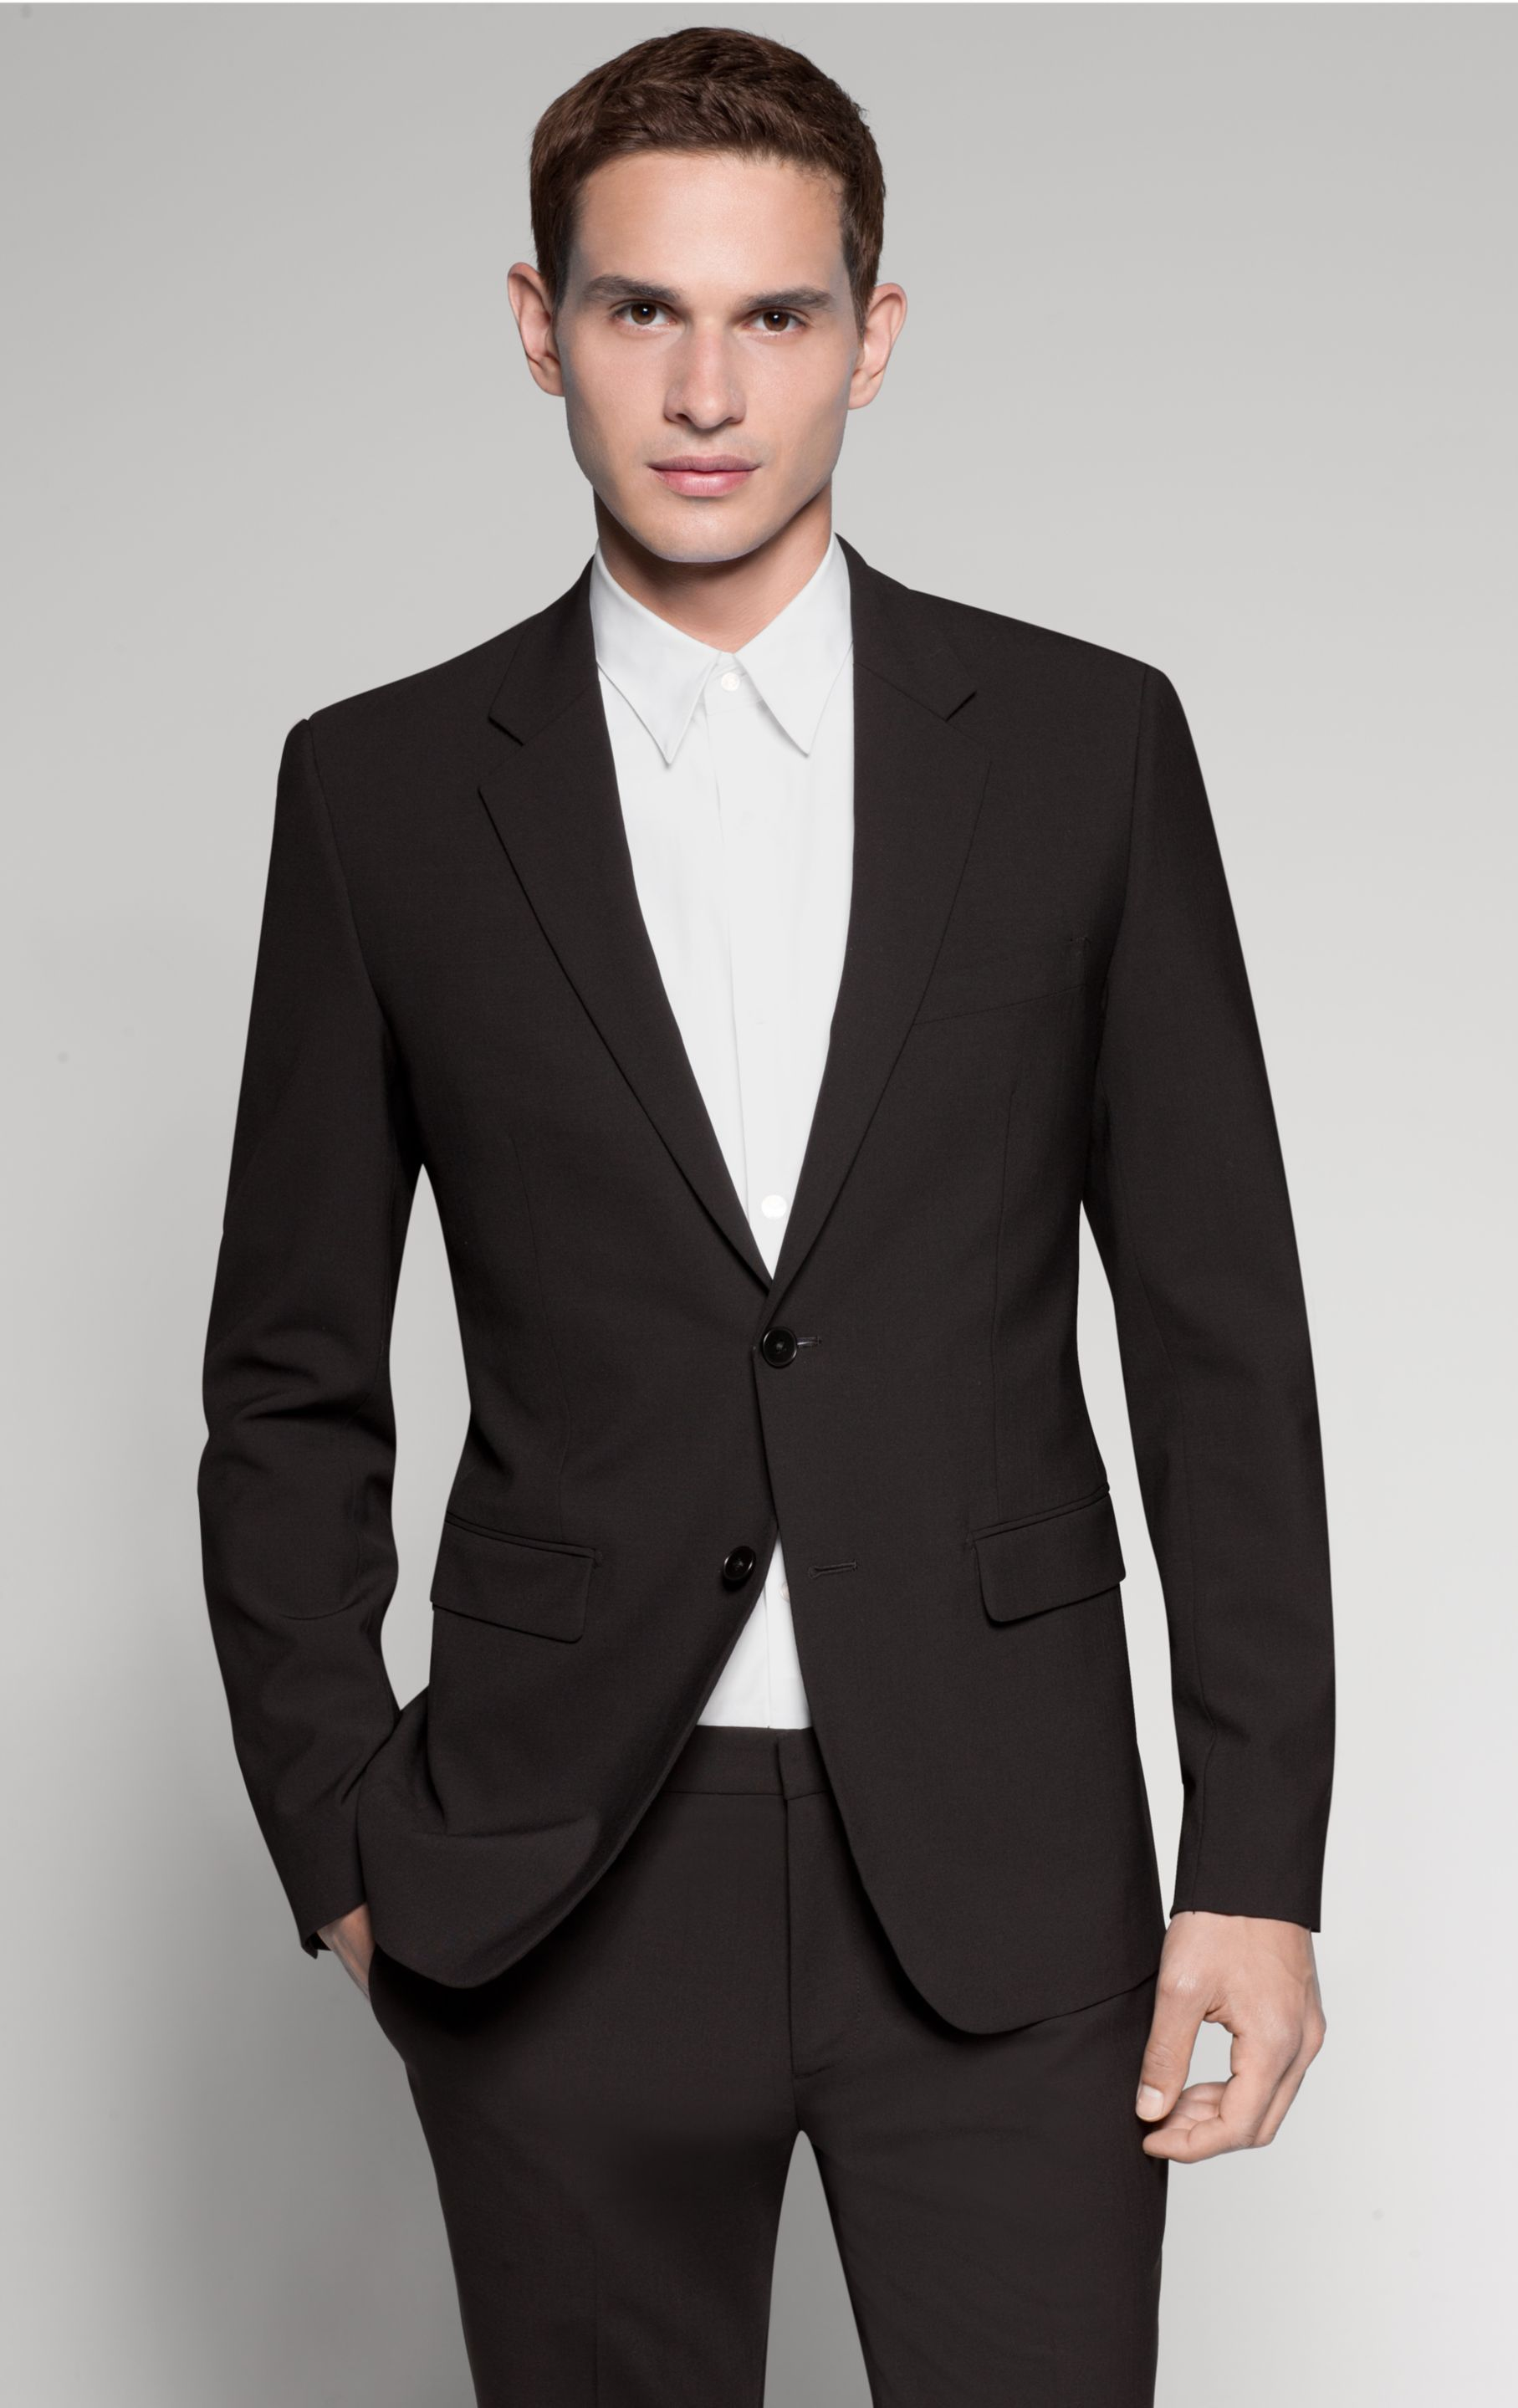 sharp suit, I'd like it with a skinny black tie or a white bow tie ...